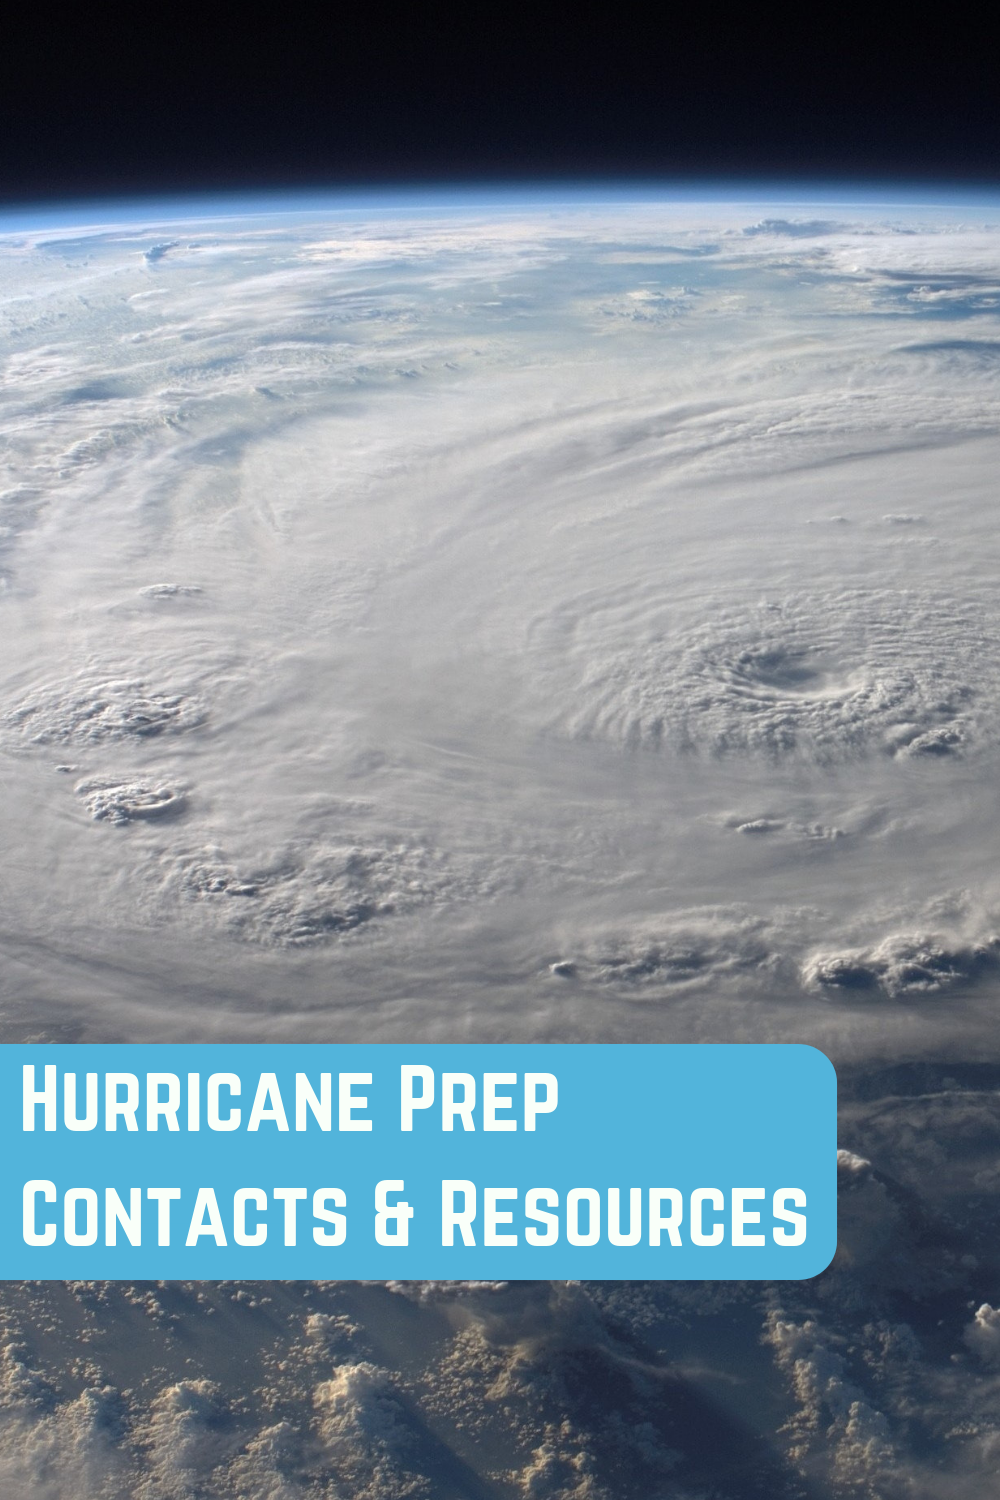 Hurricane Storm Contacts With Images Hurricane Storm Hurricane Storm